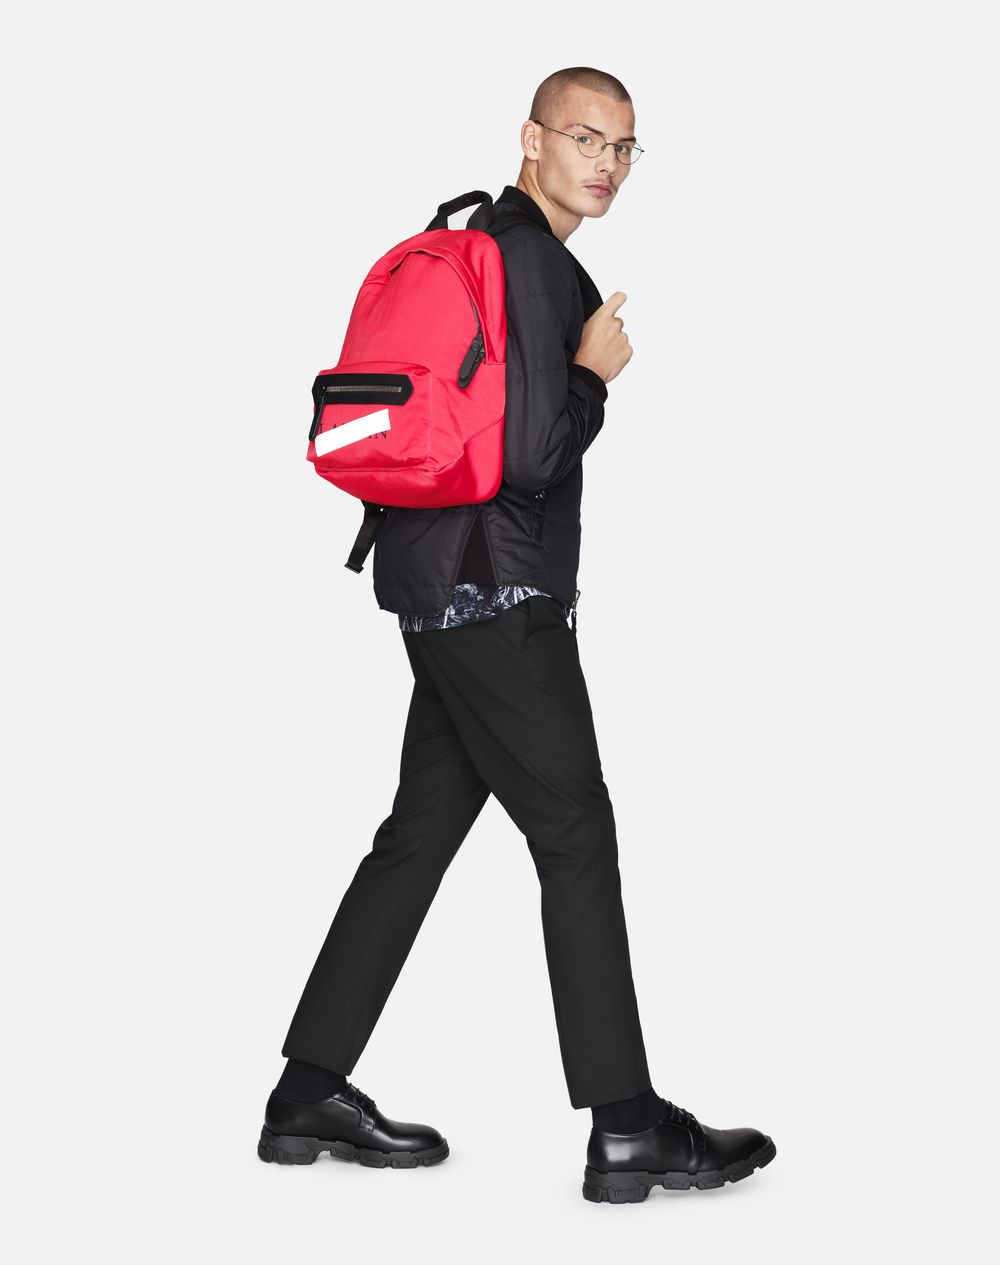 "CORAL ZIPPERED ""LANVIN"" BACKPACK - Lanvin"